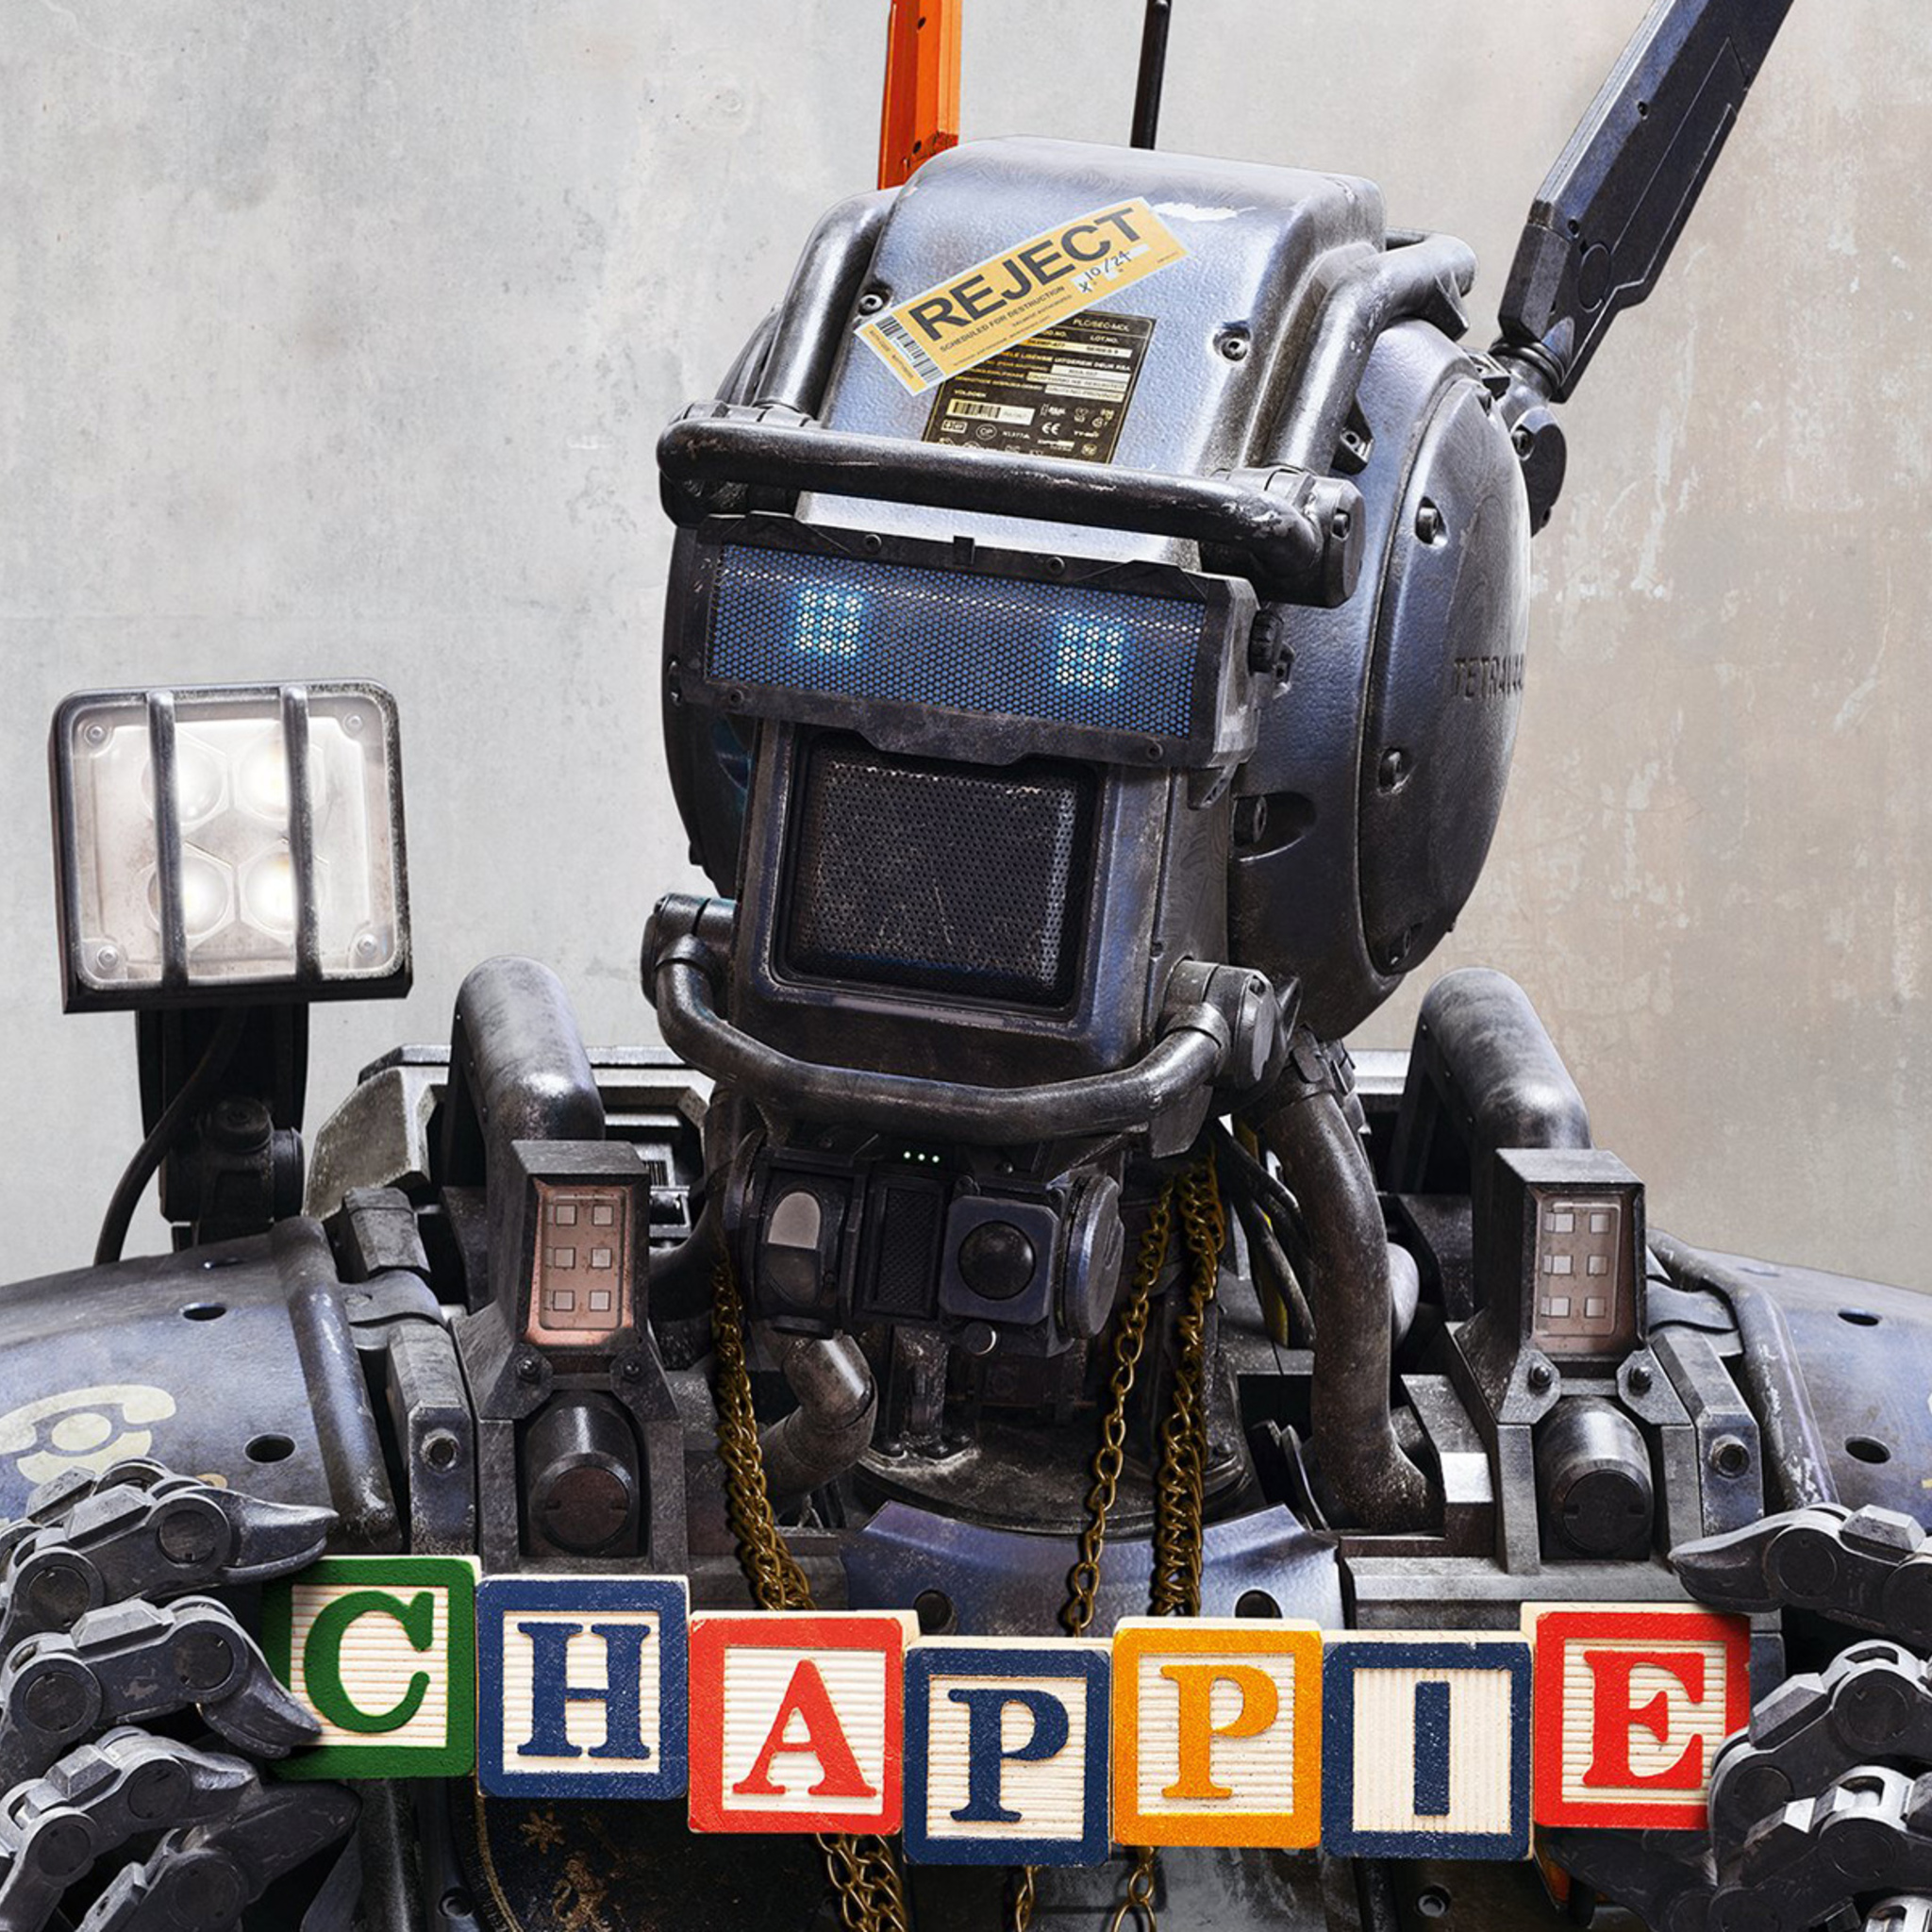 chappie-2015-movie.jpg